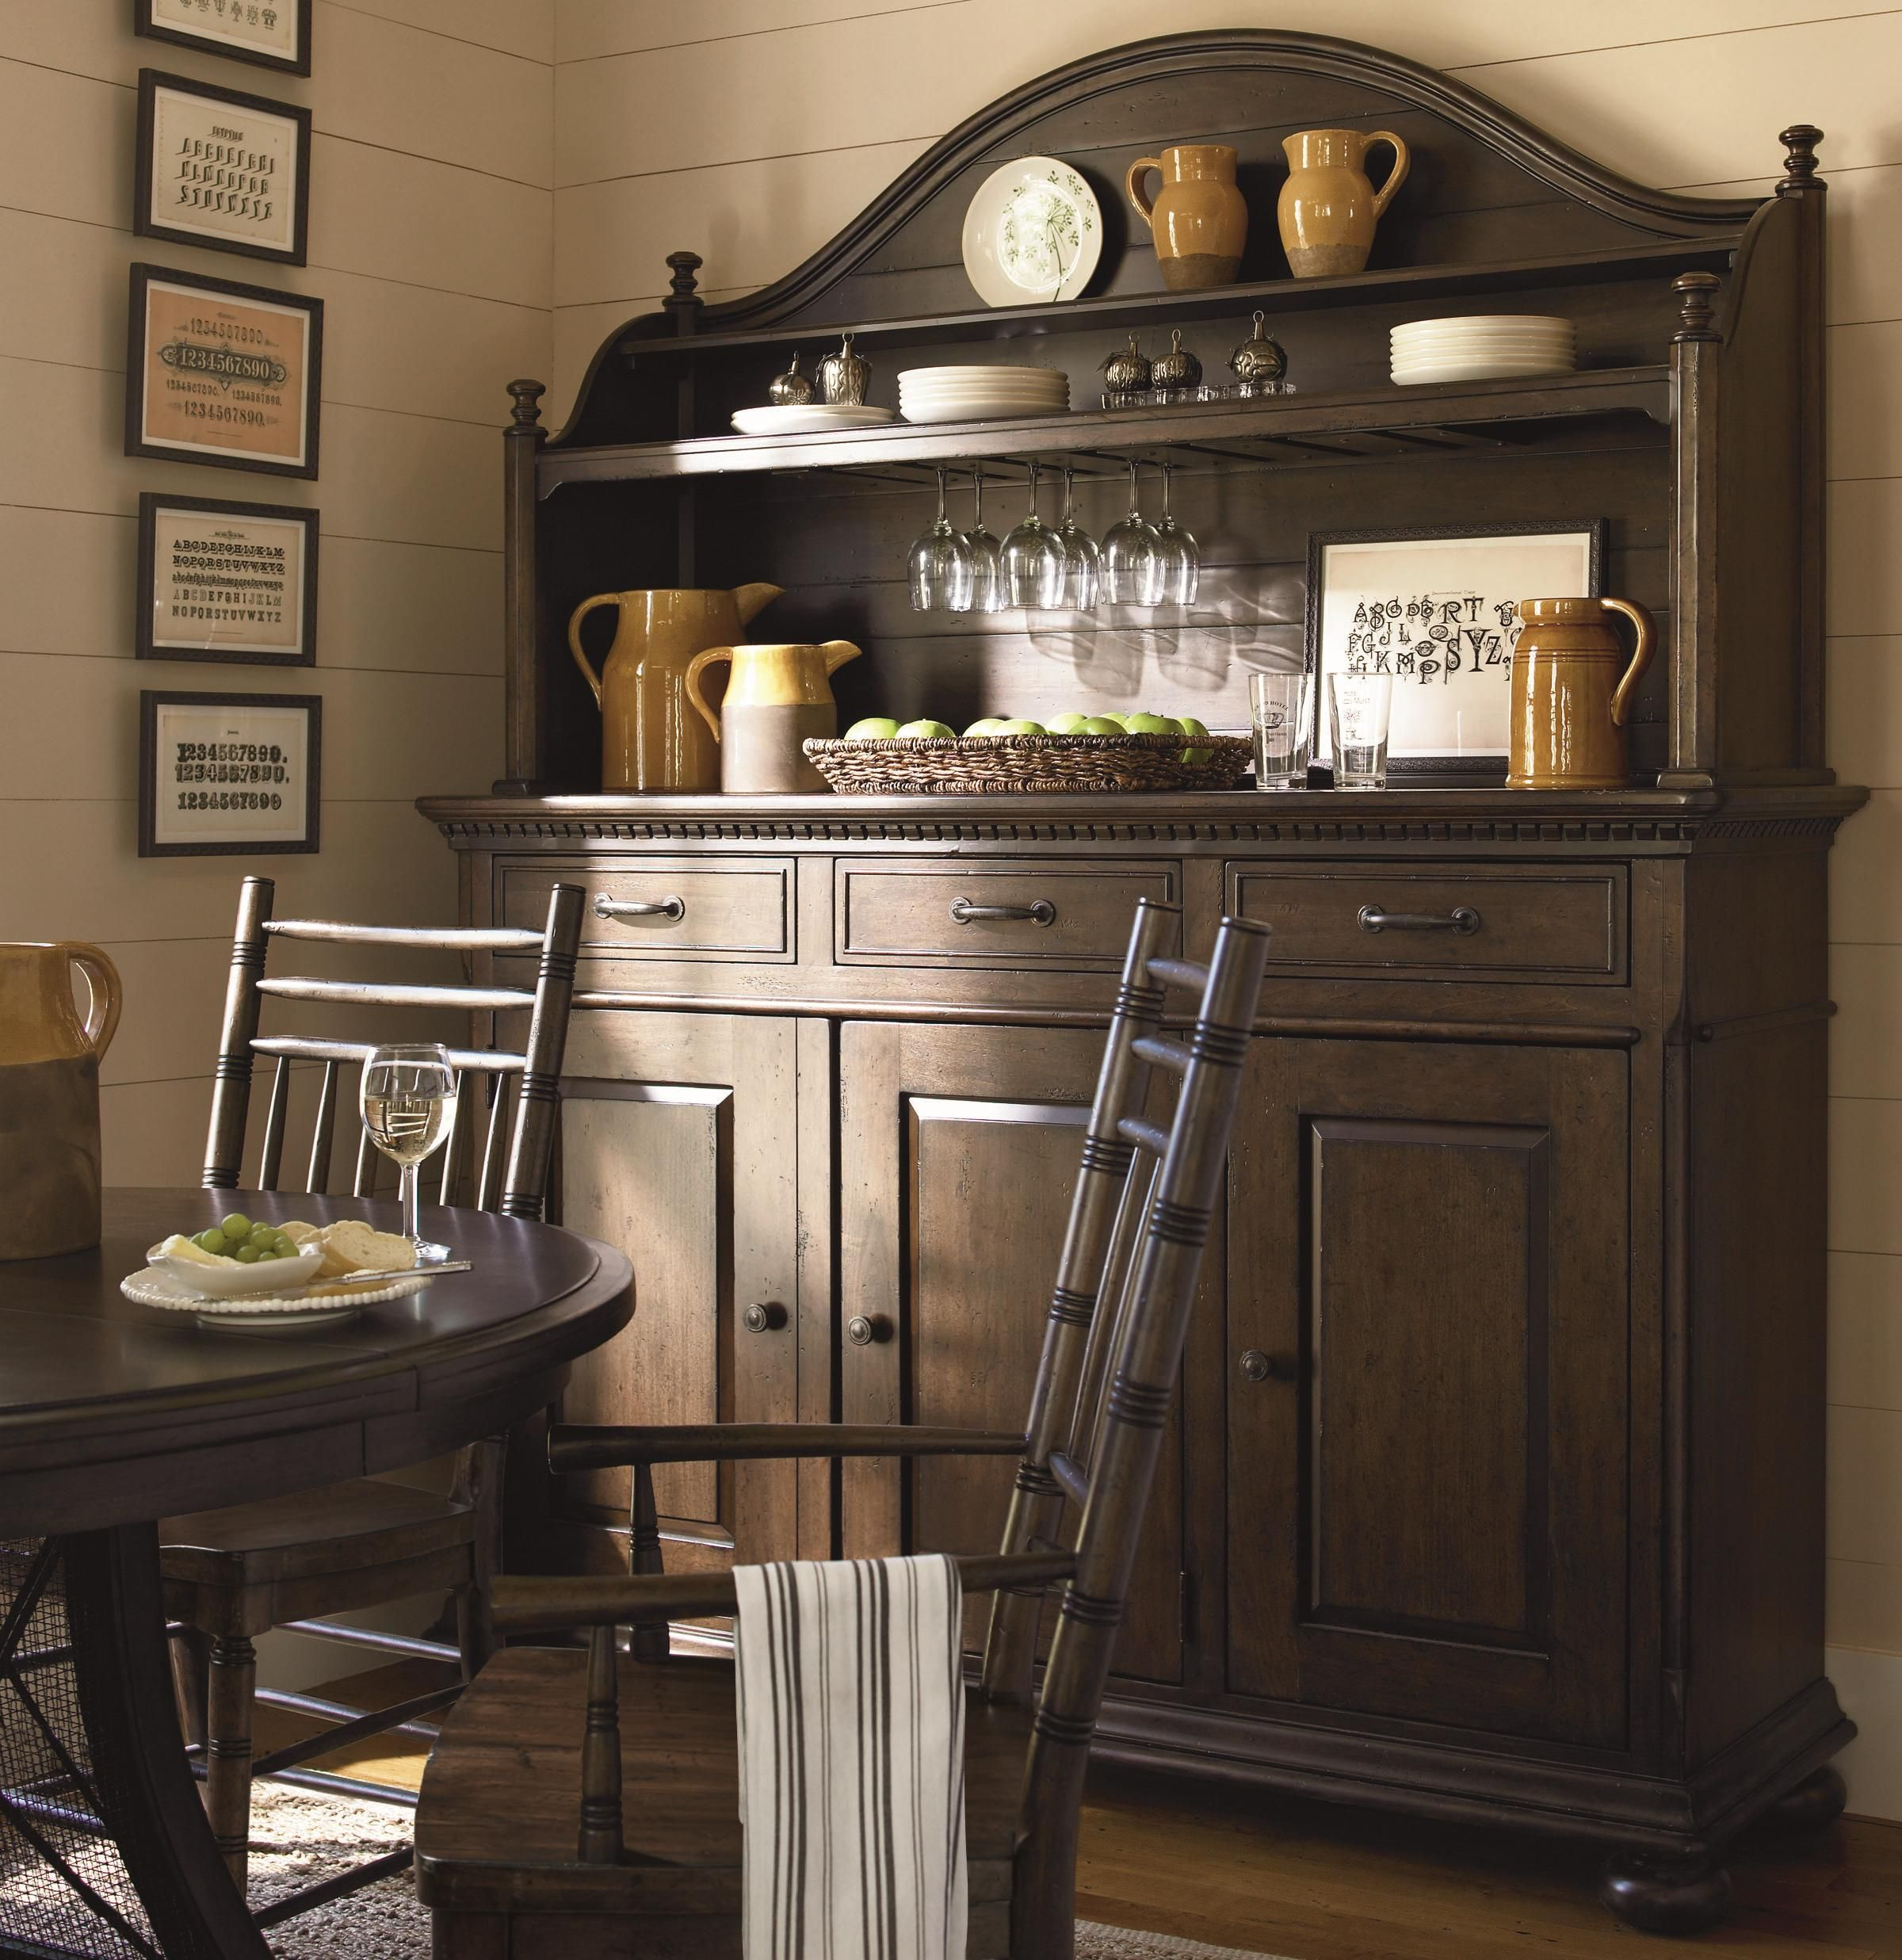 Kitchen Furniture Outlets: Down Home Hostess Credenza And Hutch By Paula Deen By